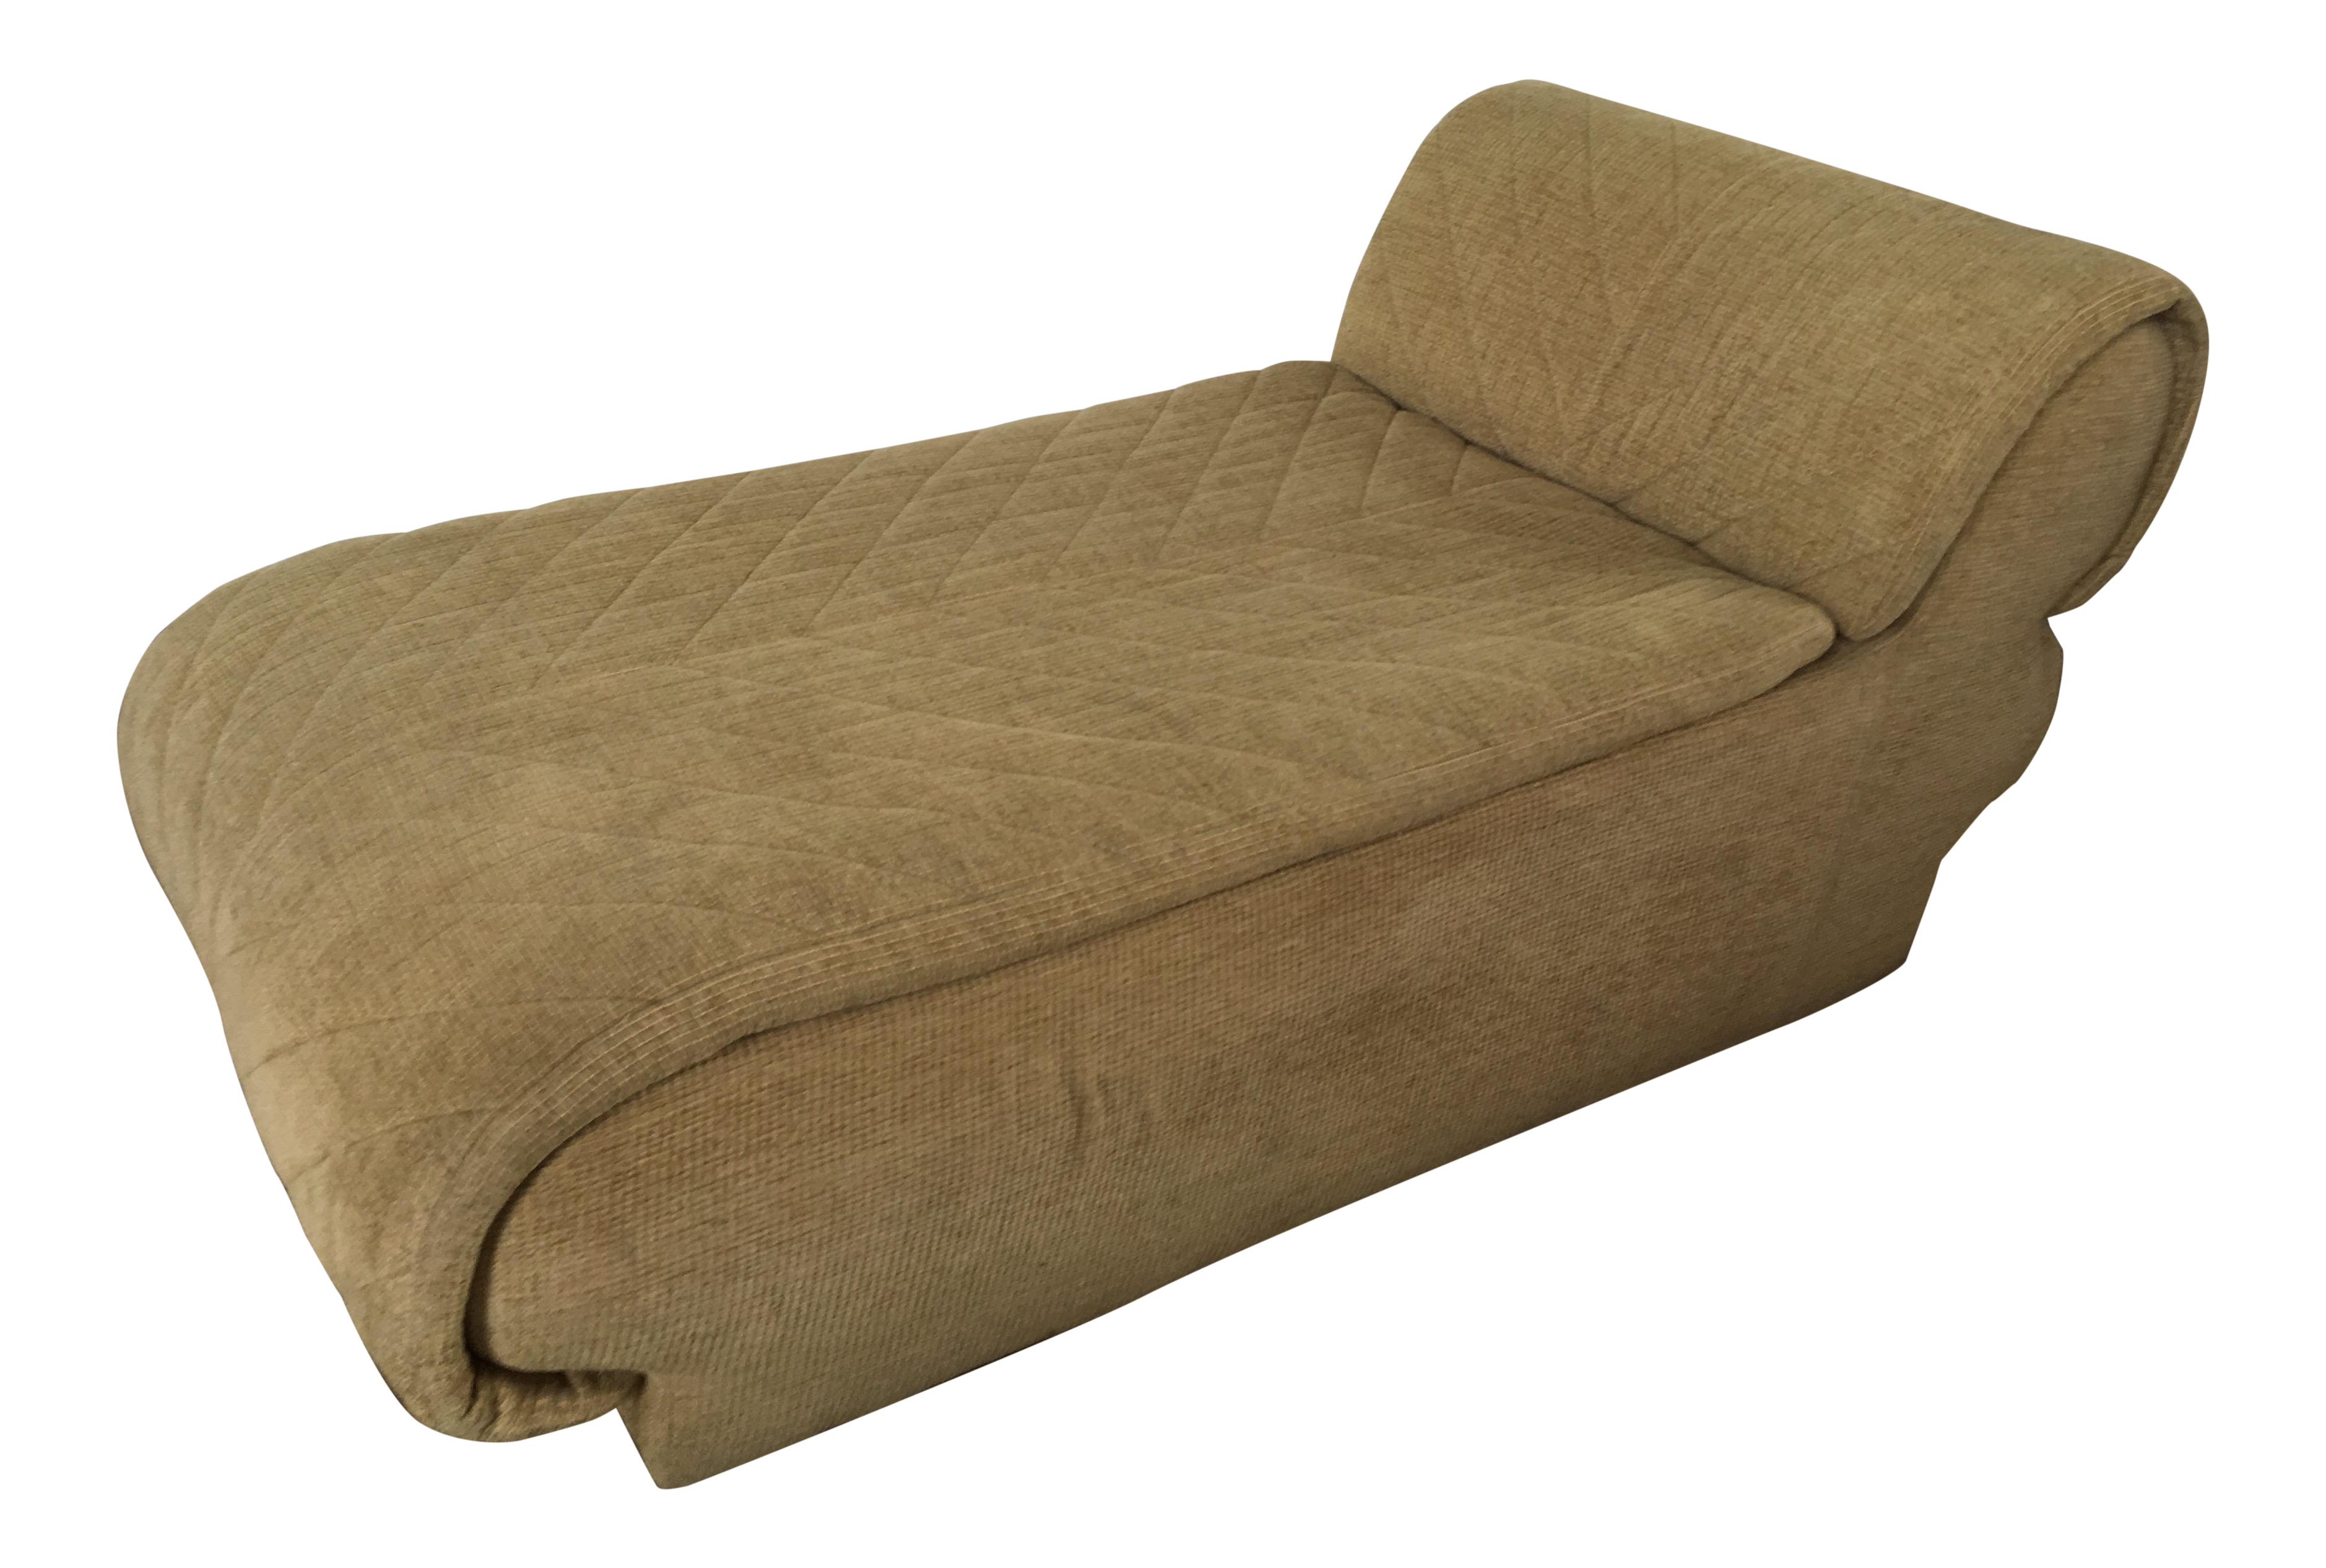 Superior Vintage Vladimir Kagan For Preview Furniture Chaise Lounge   Image 1 Of 9